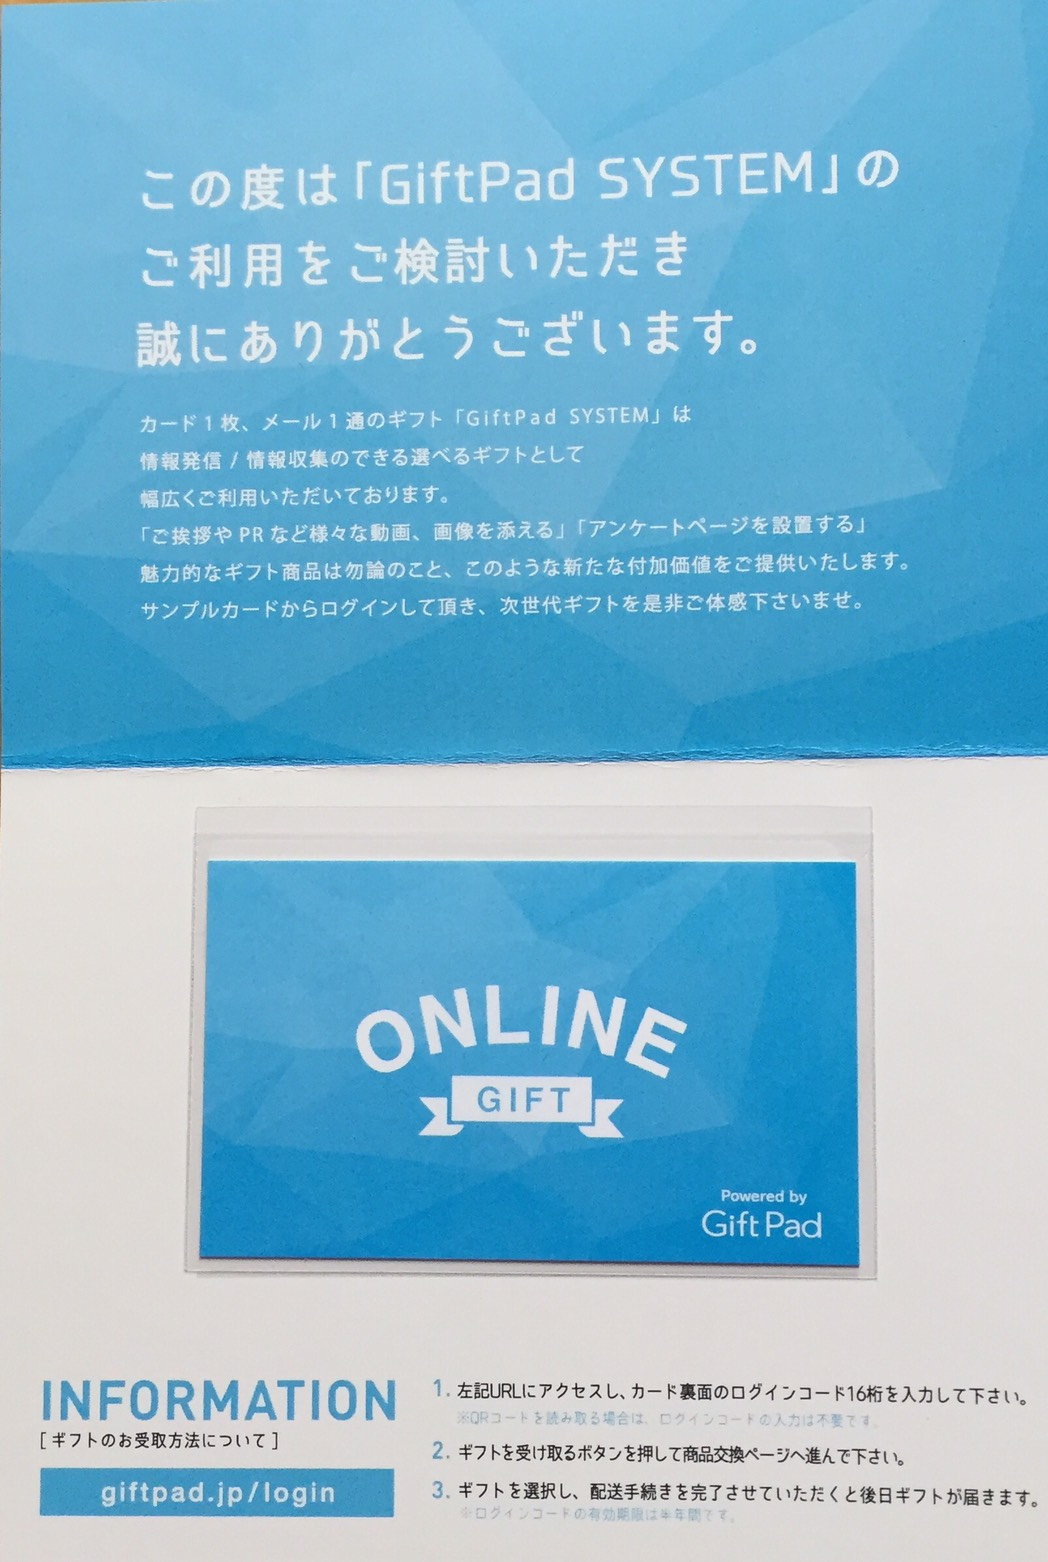 By scanning the QR code printed behind the card, you can access the web catalog